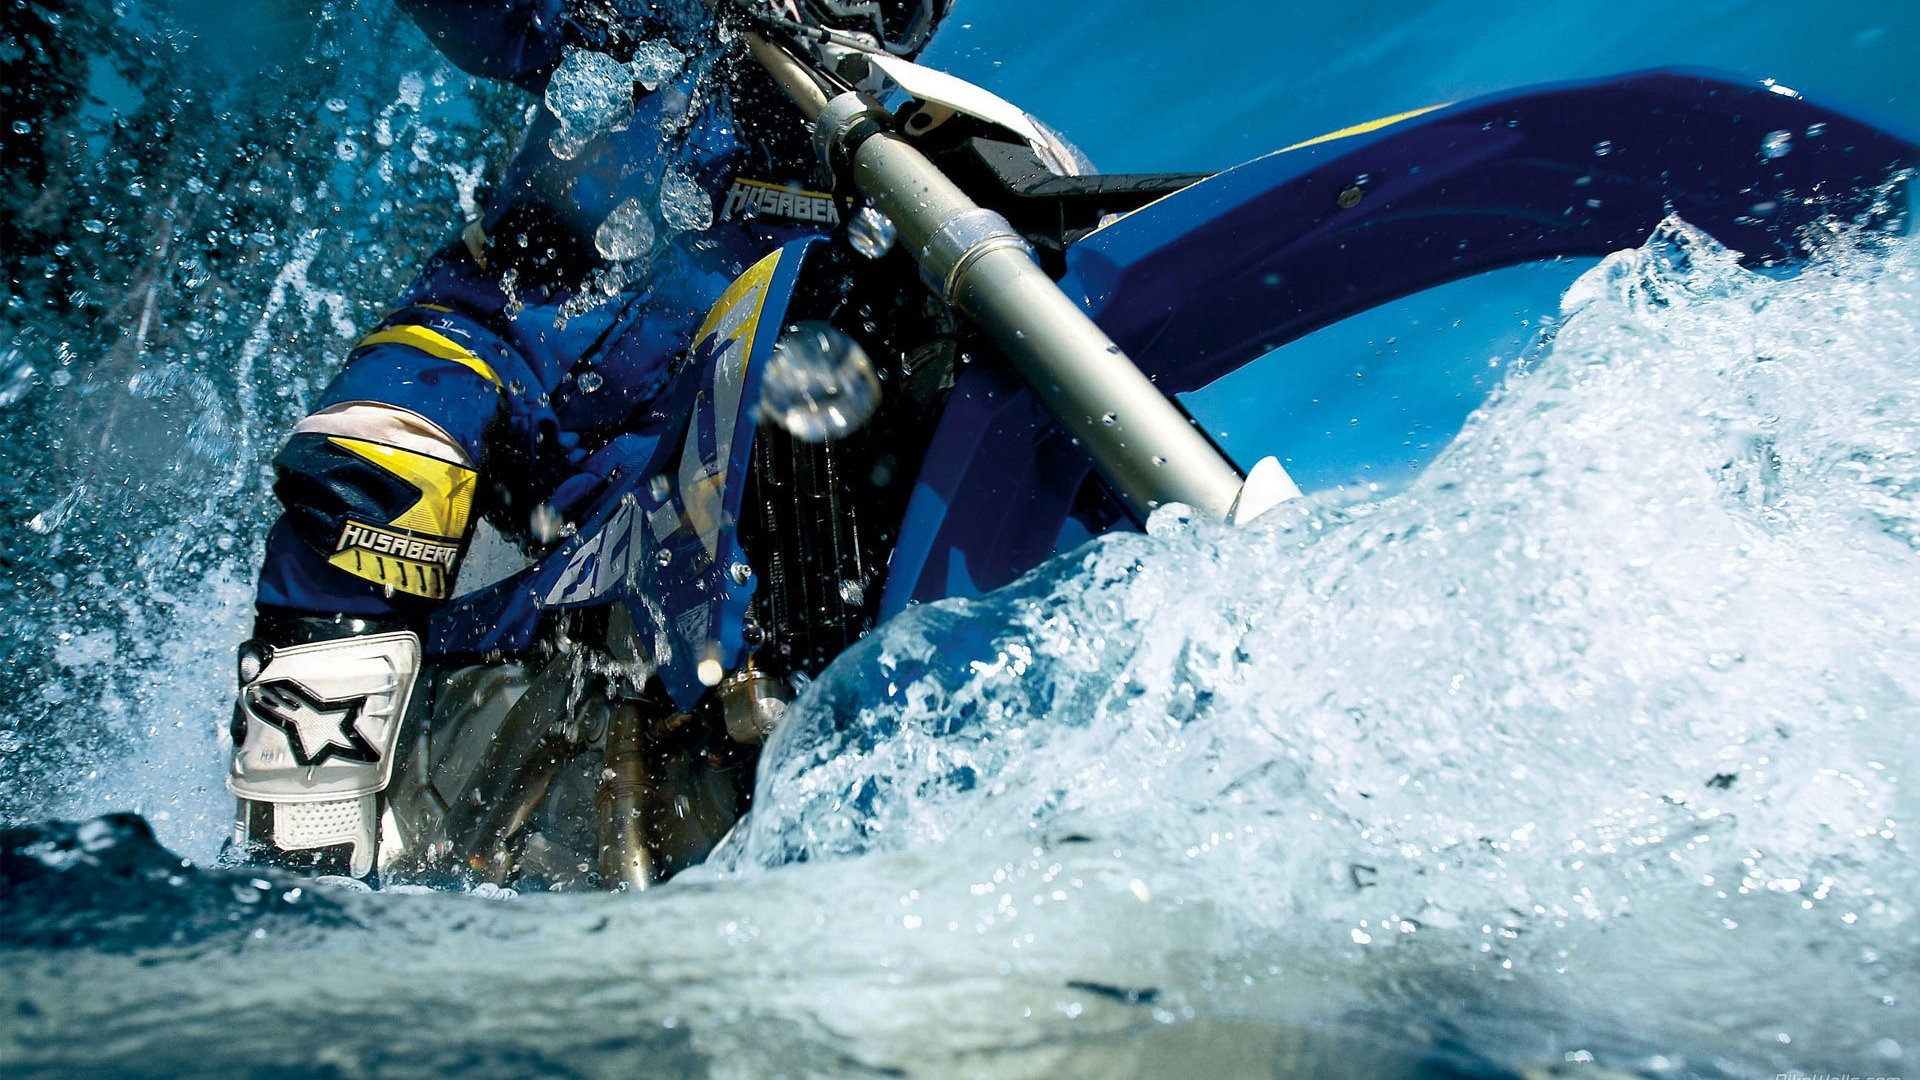 water motorbikes HD Wallpaper